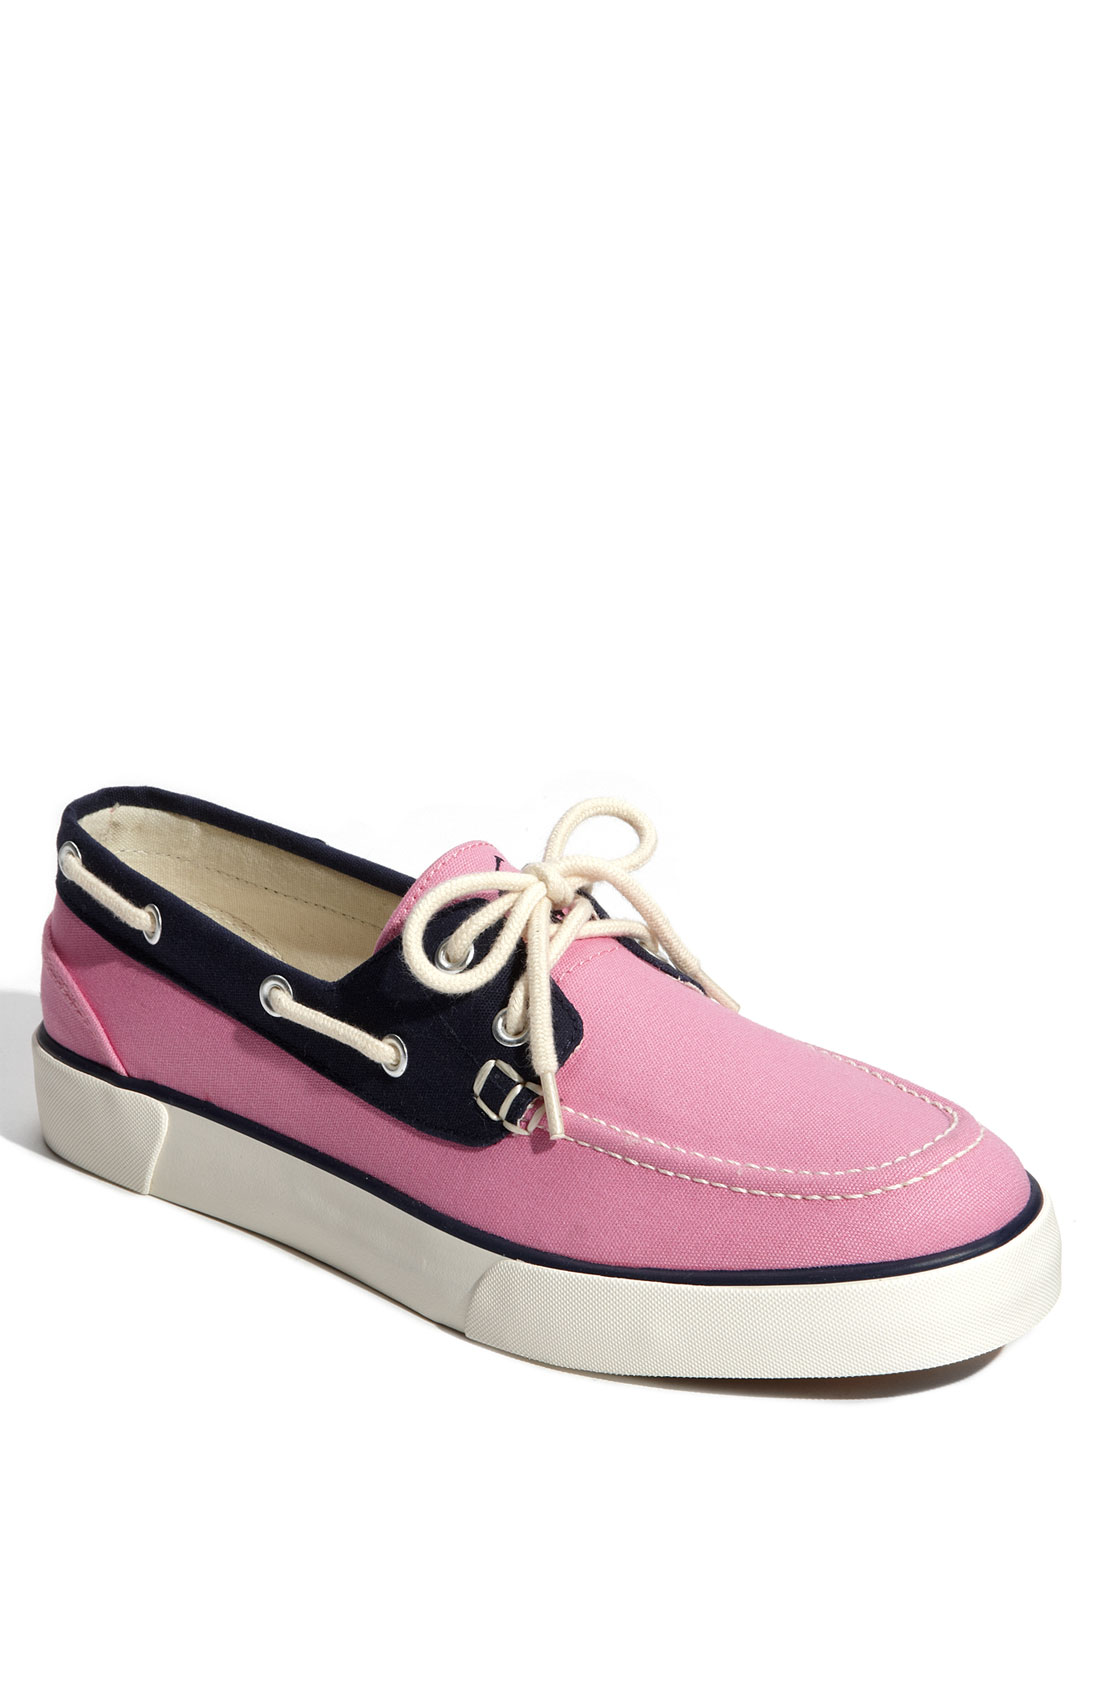 polo ralph lander boat shoe in blue for pink